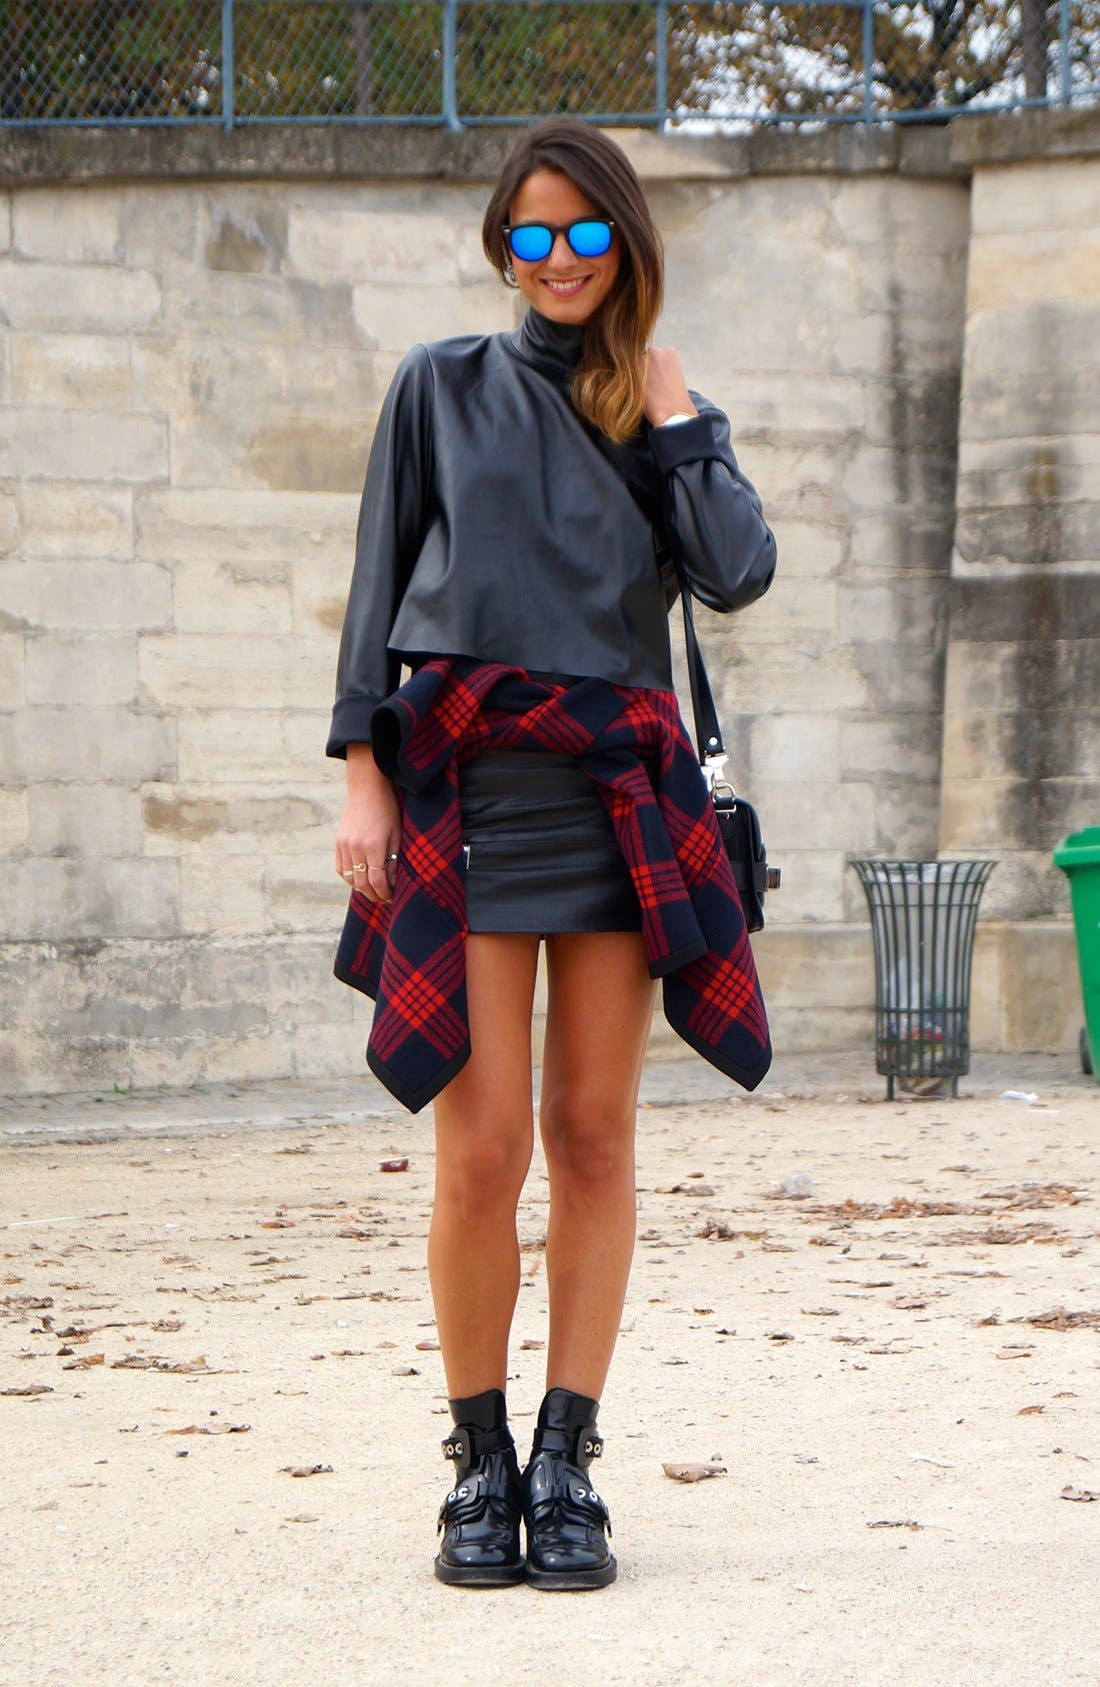 Main Image - The Leather Mini Street Style Look